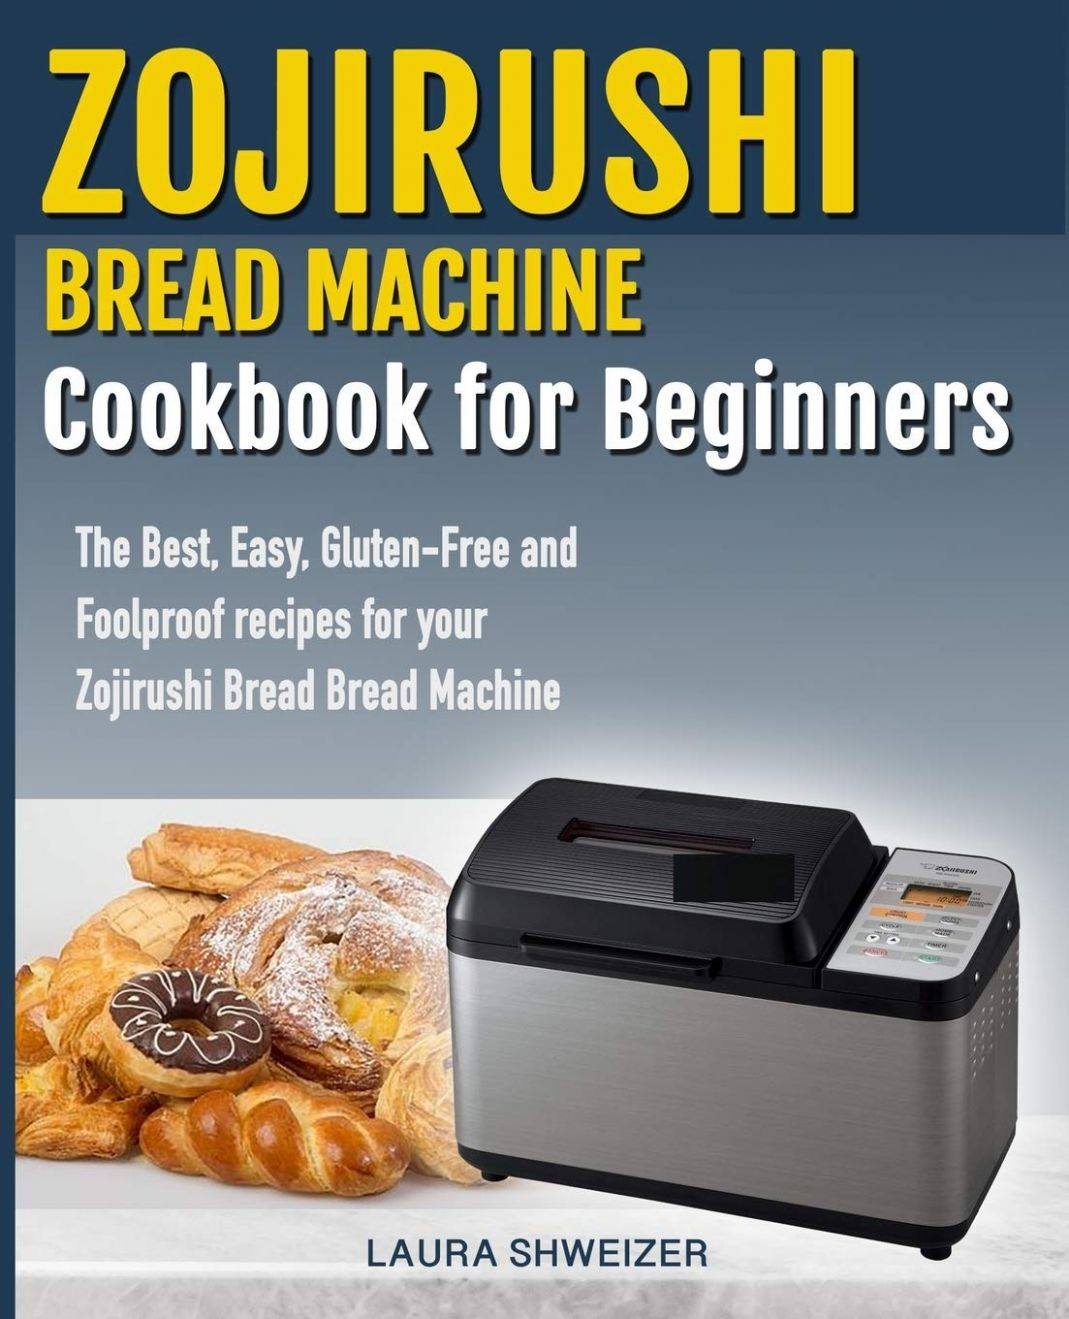 Zojirushi Bread Machine Cookbook for beginners: The Best, Easy ..